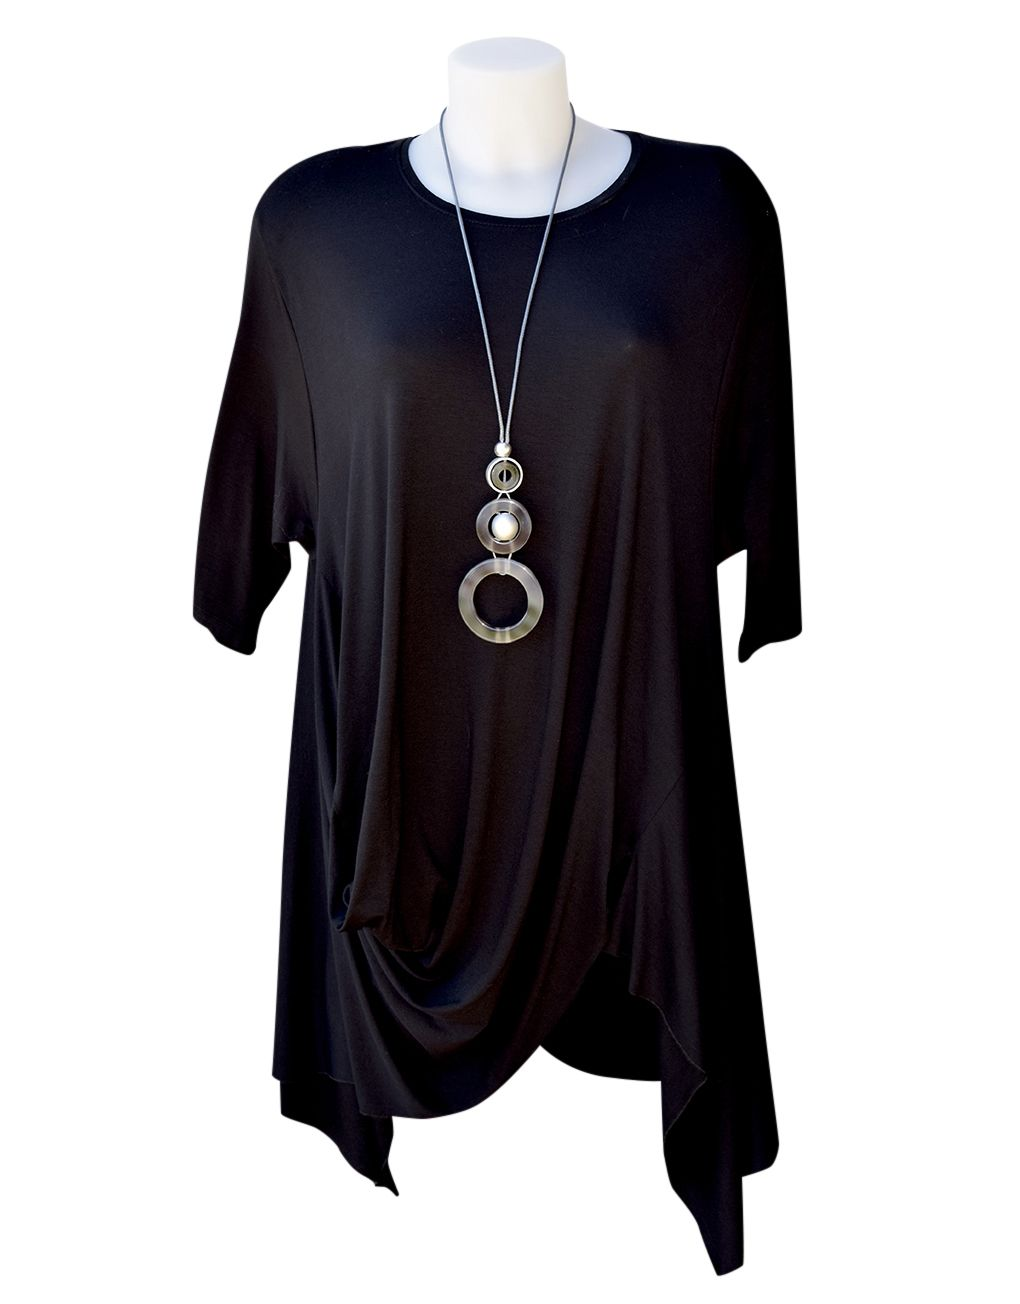 French Styled Floaty Stretch Jersey Tunic Top Black Size 1